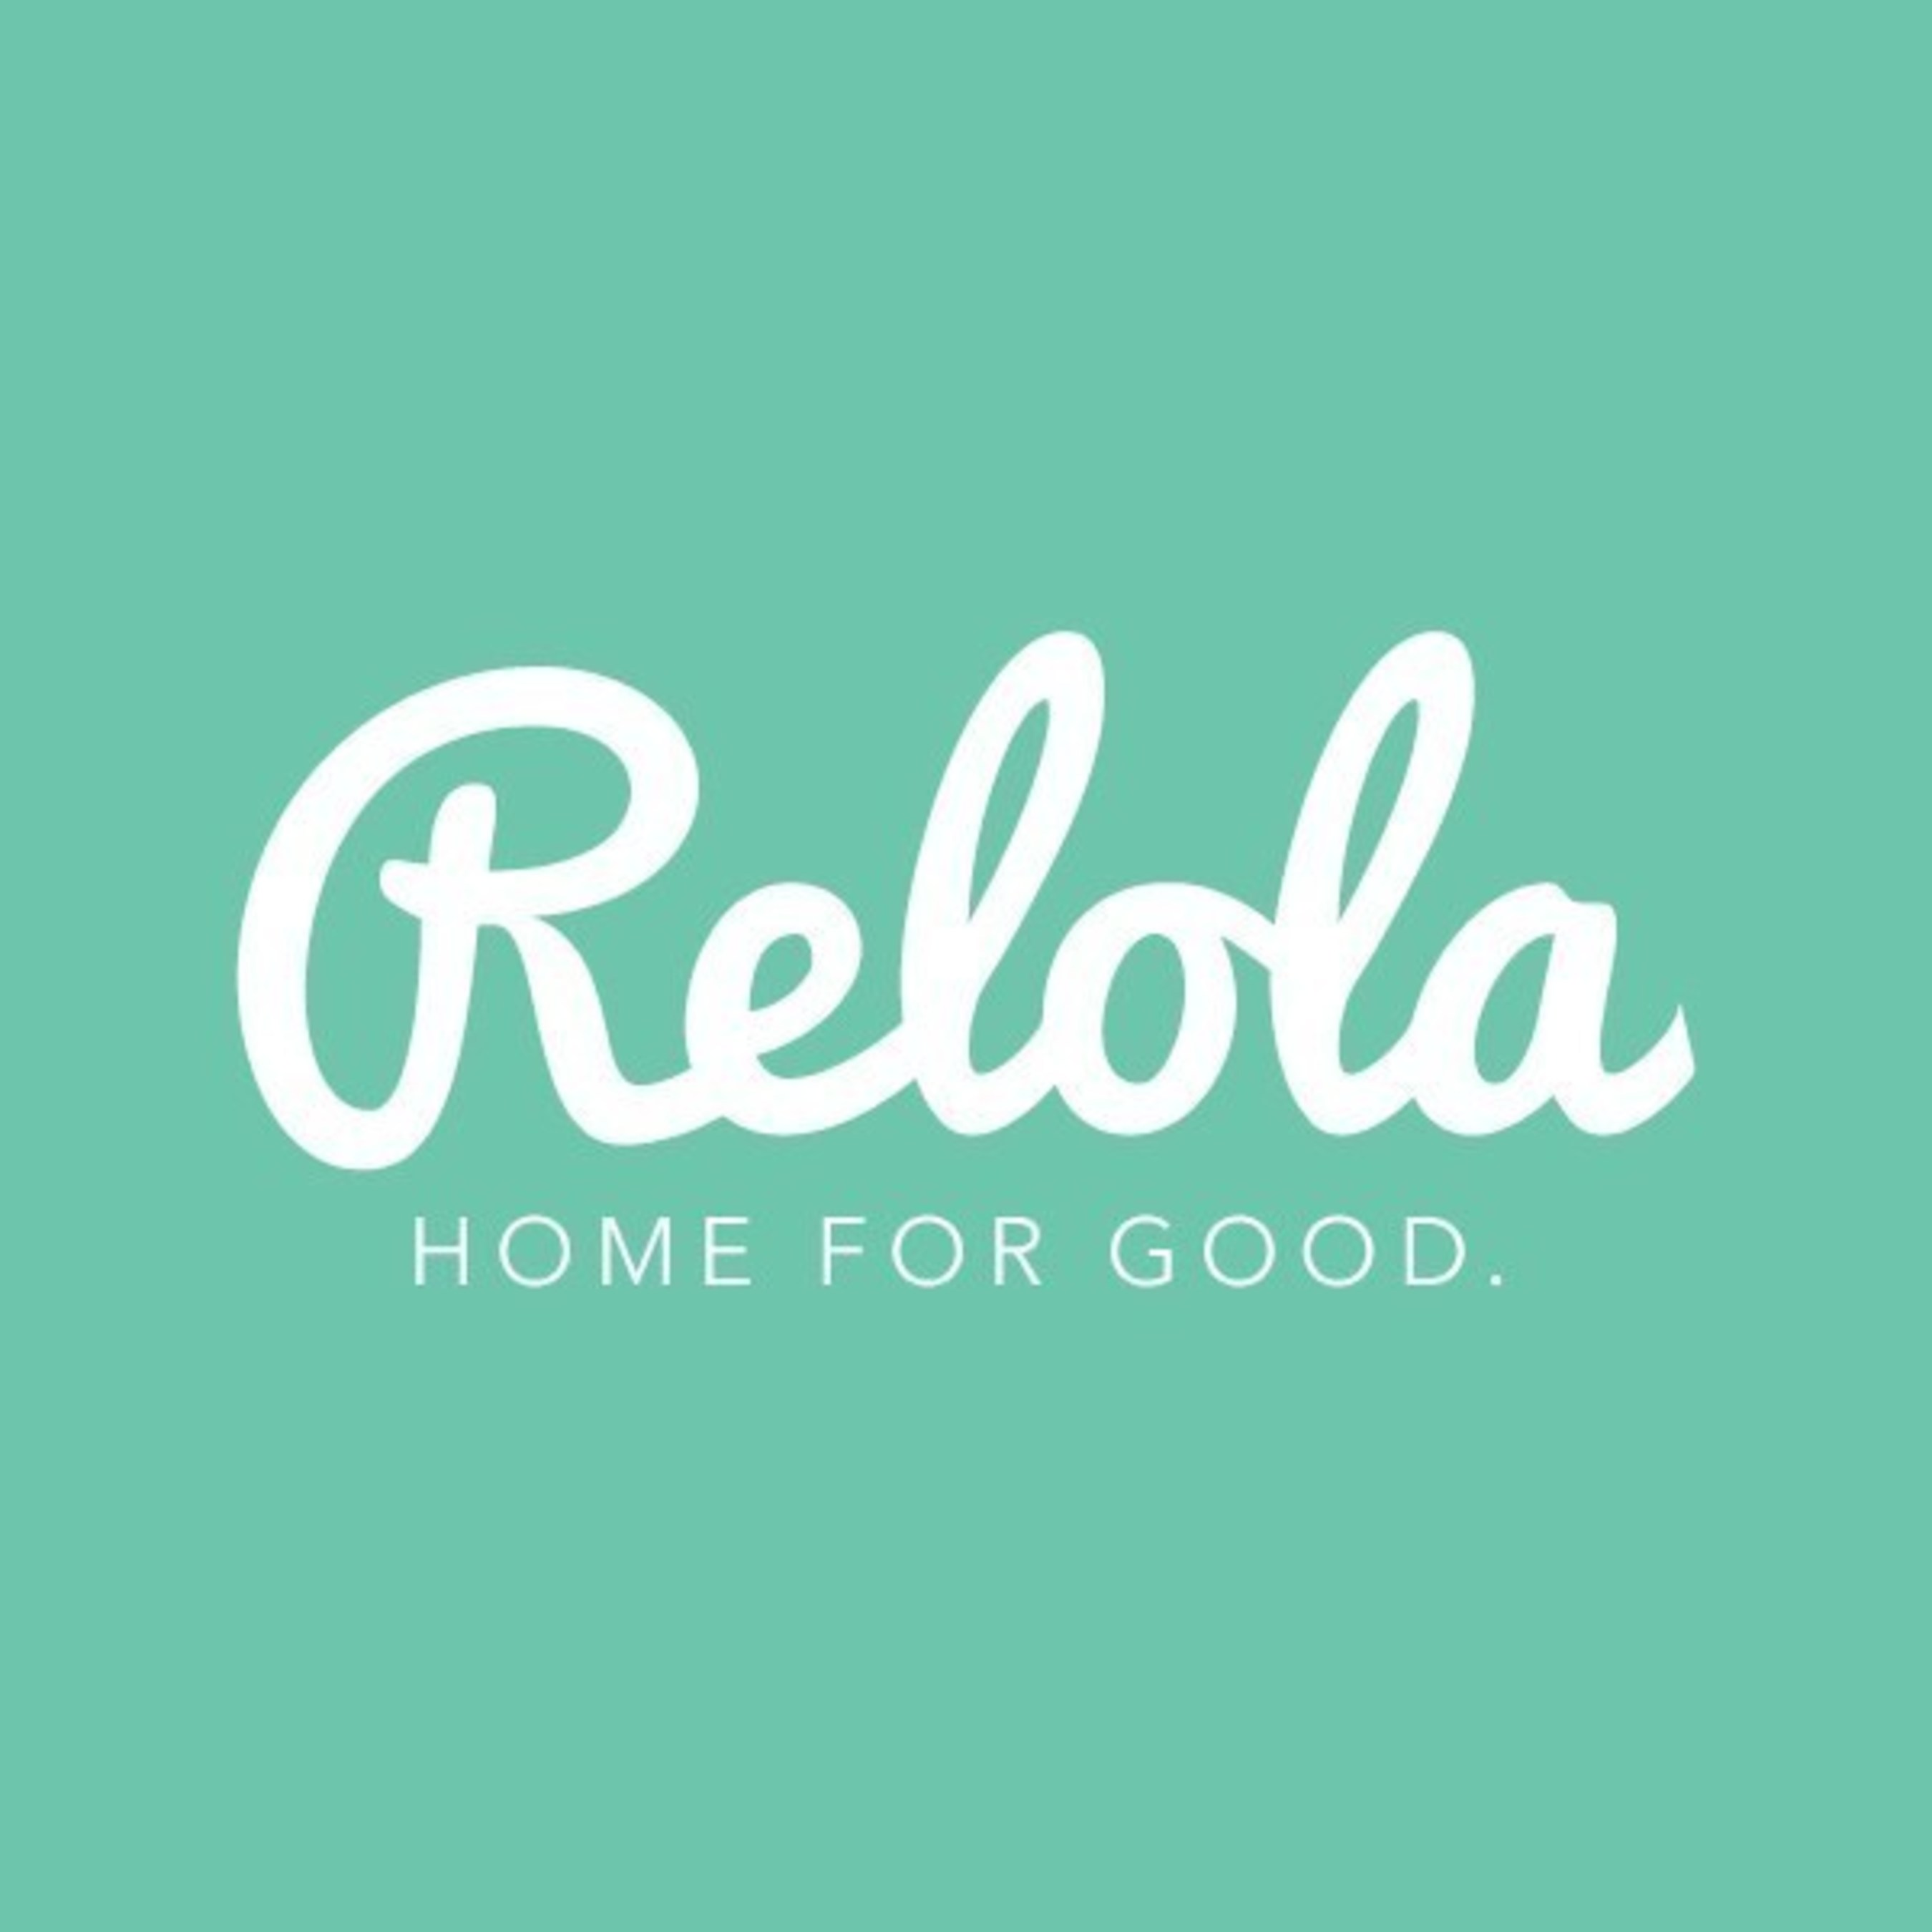 Relola To Launch Mobile App At NAR Realtors' Conference & Expo